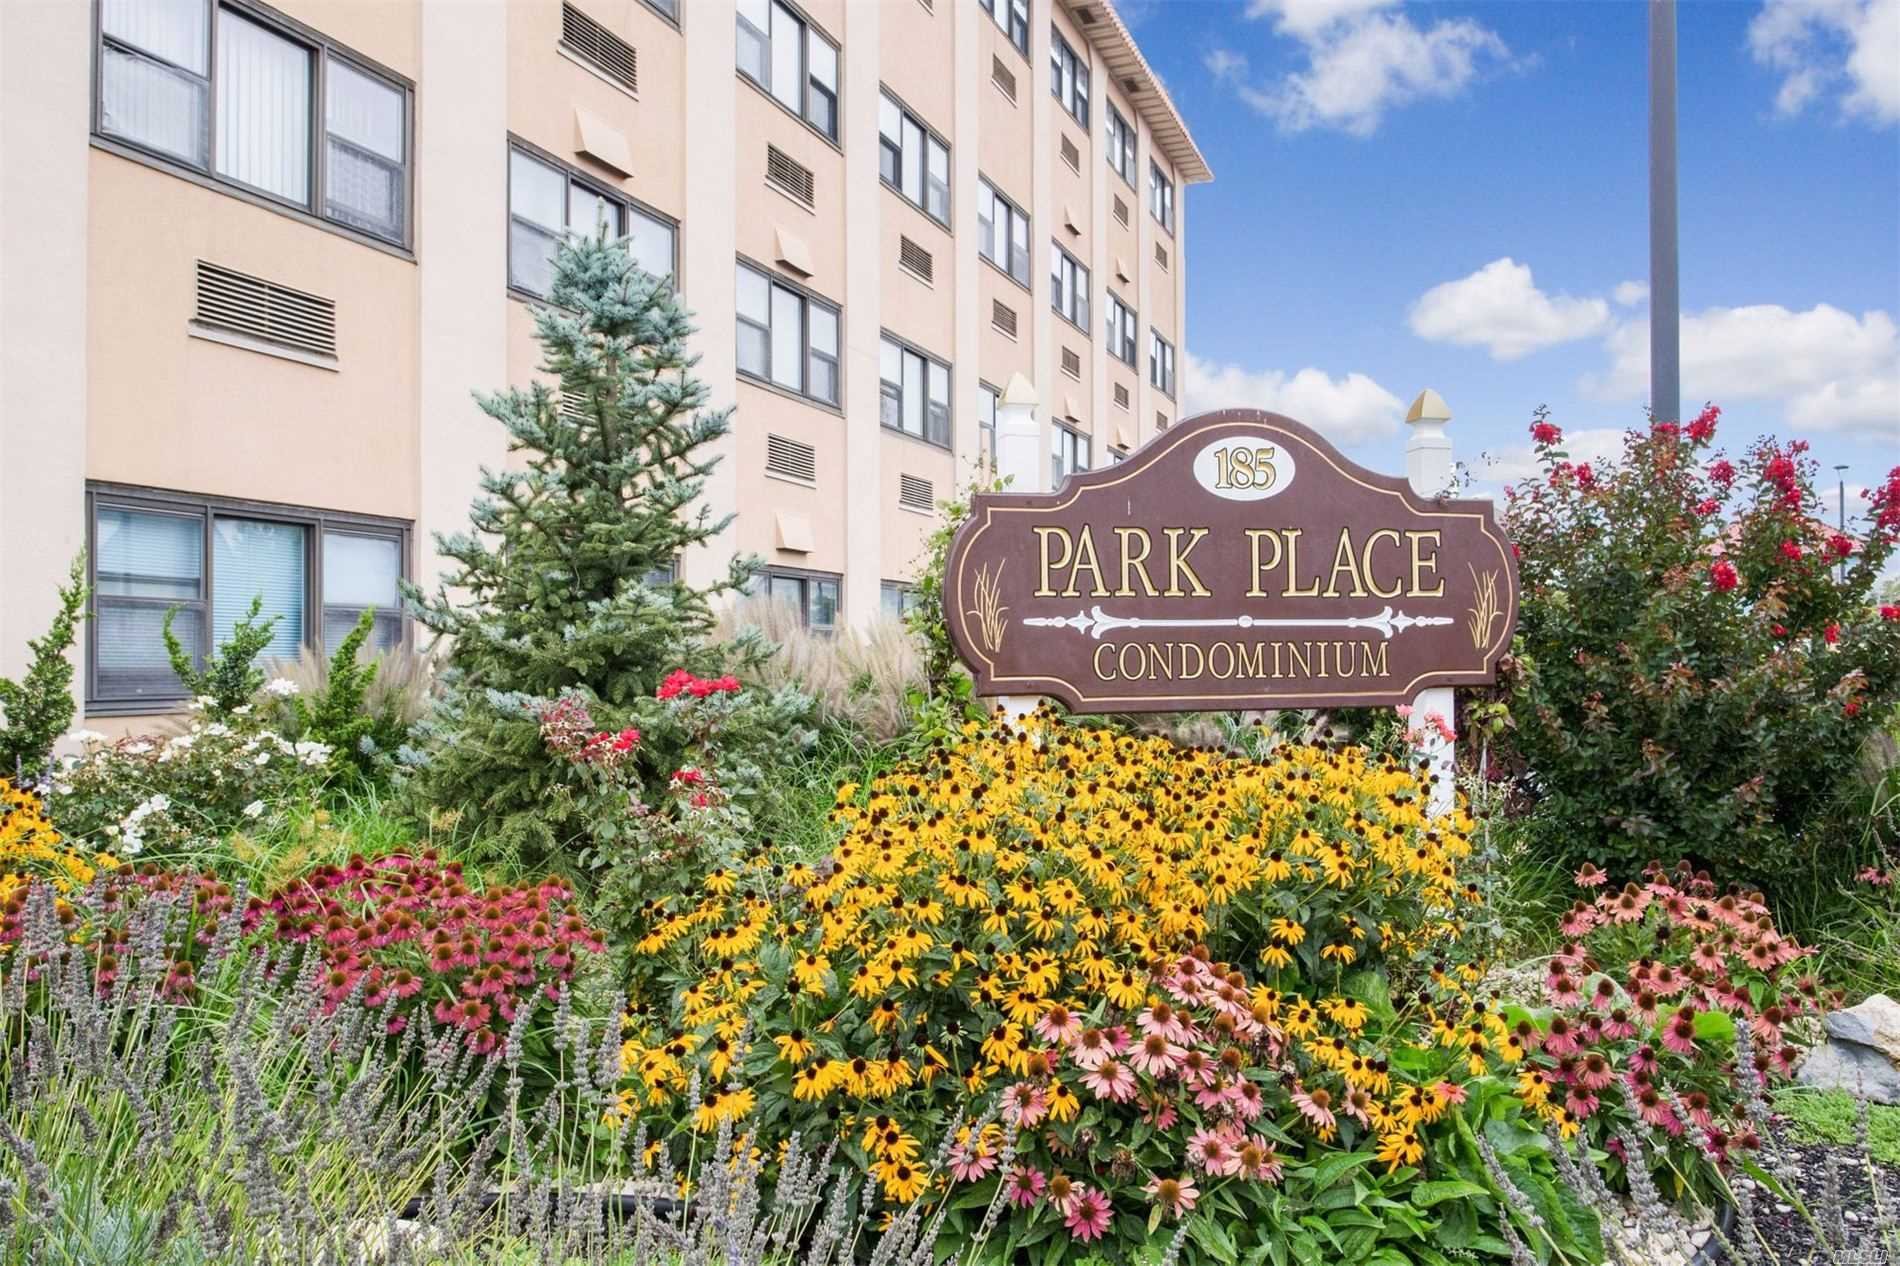 Property for sale at 185 W Park Avenue # 301, Long Beach NY 11561, Long Beach,  New York 11561